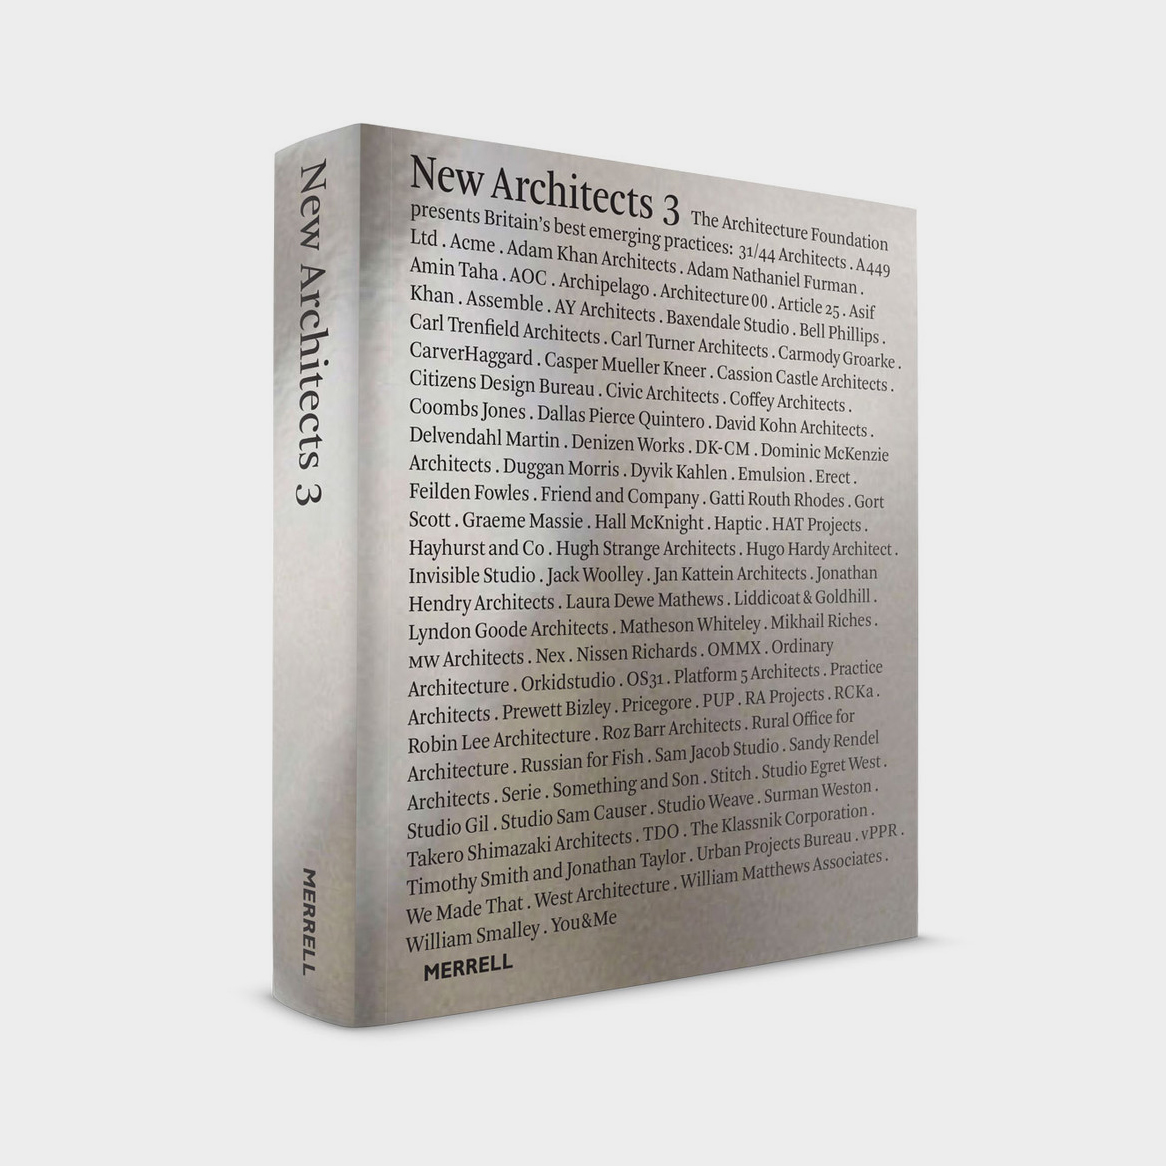 BPA included in New Architects 3